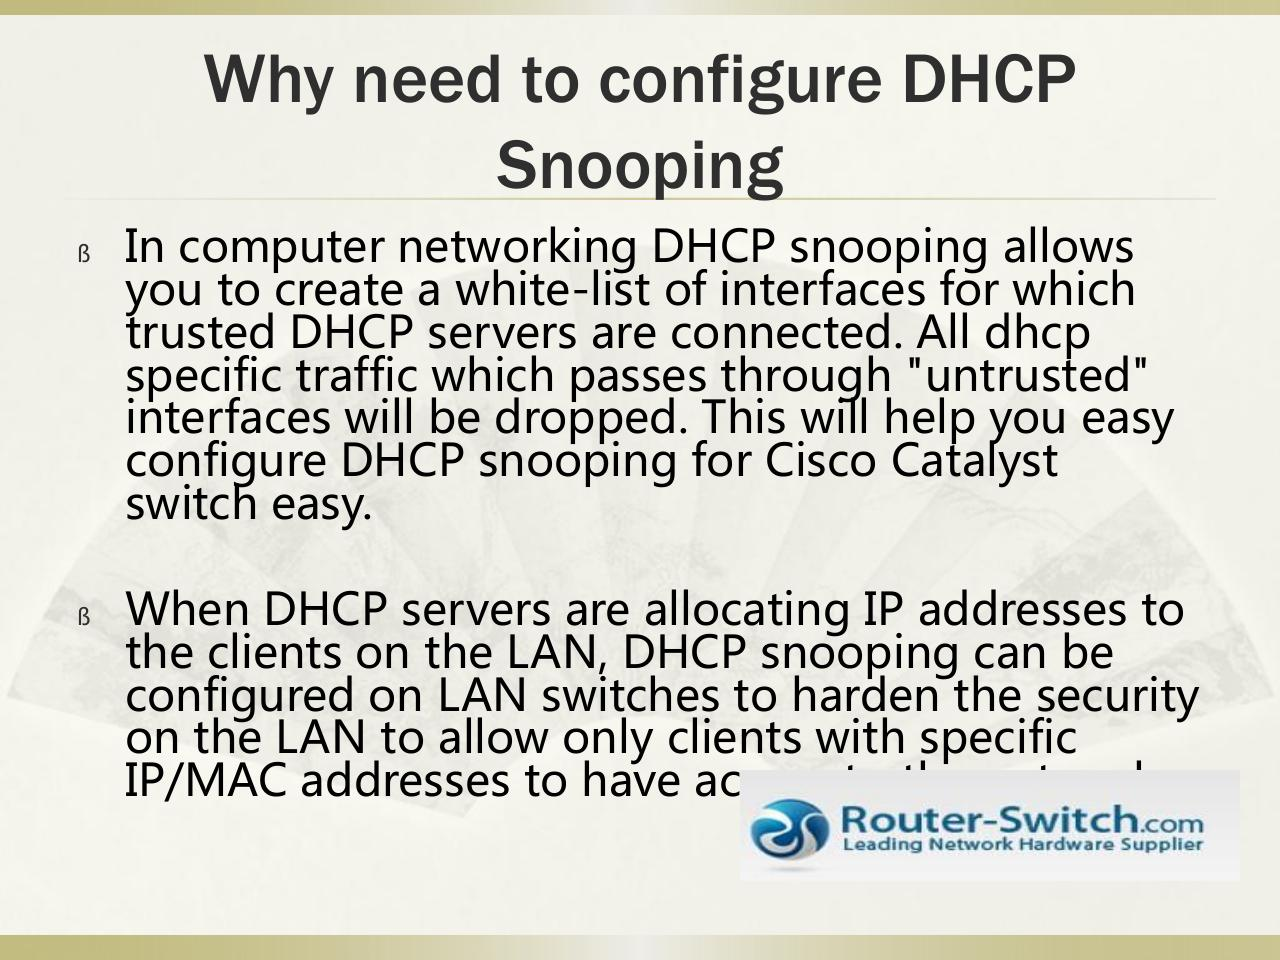 Aperçu du fichier PDF configure-dhcp-snooping-for-cisco-switch.pdf - page 2/8